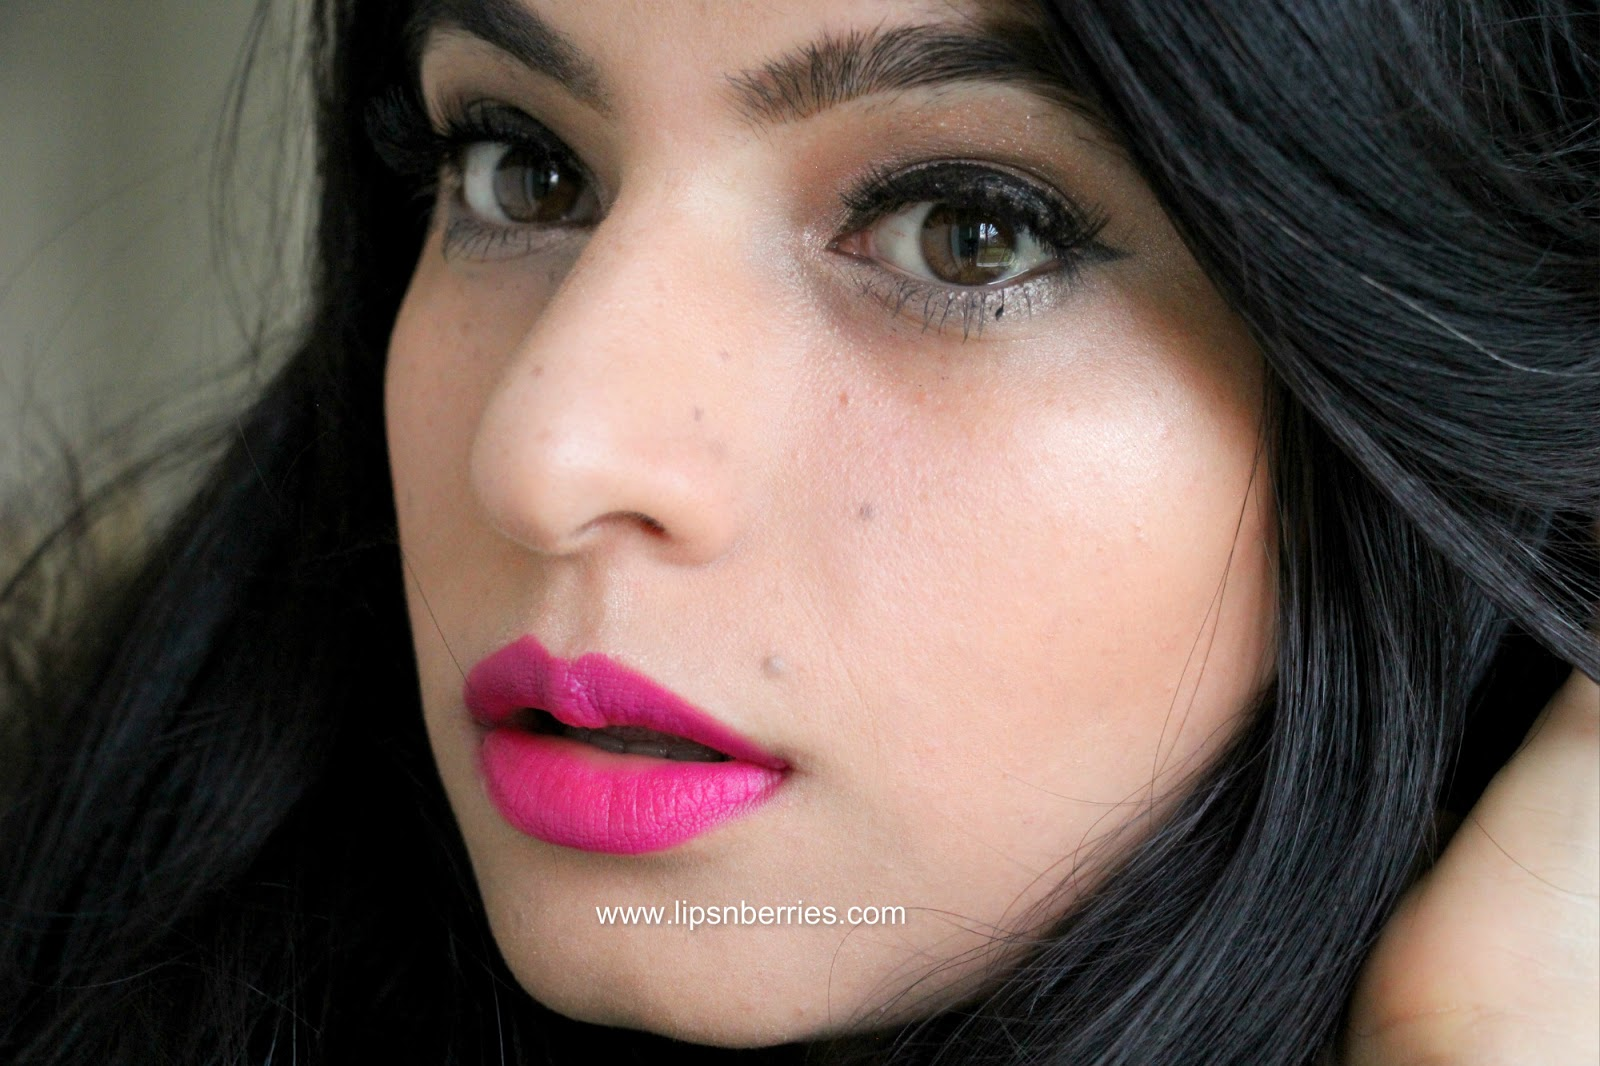 Amato Lips n Berries!: MAC Lipstick in Flat Out Fabulous- Review + FOTD  QV28